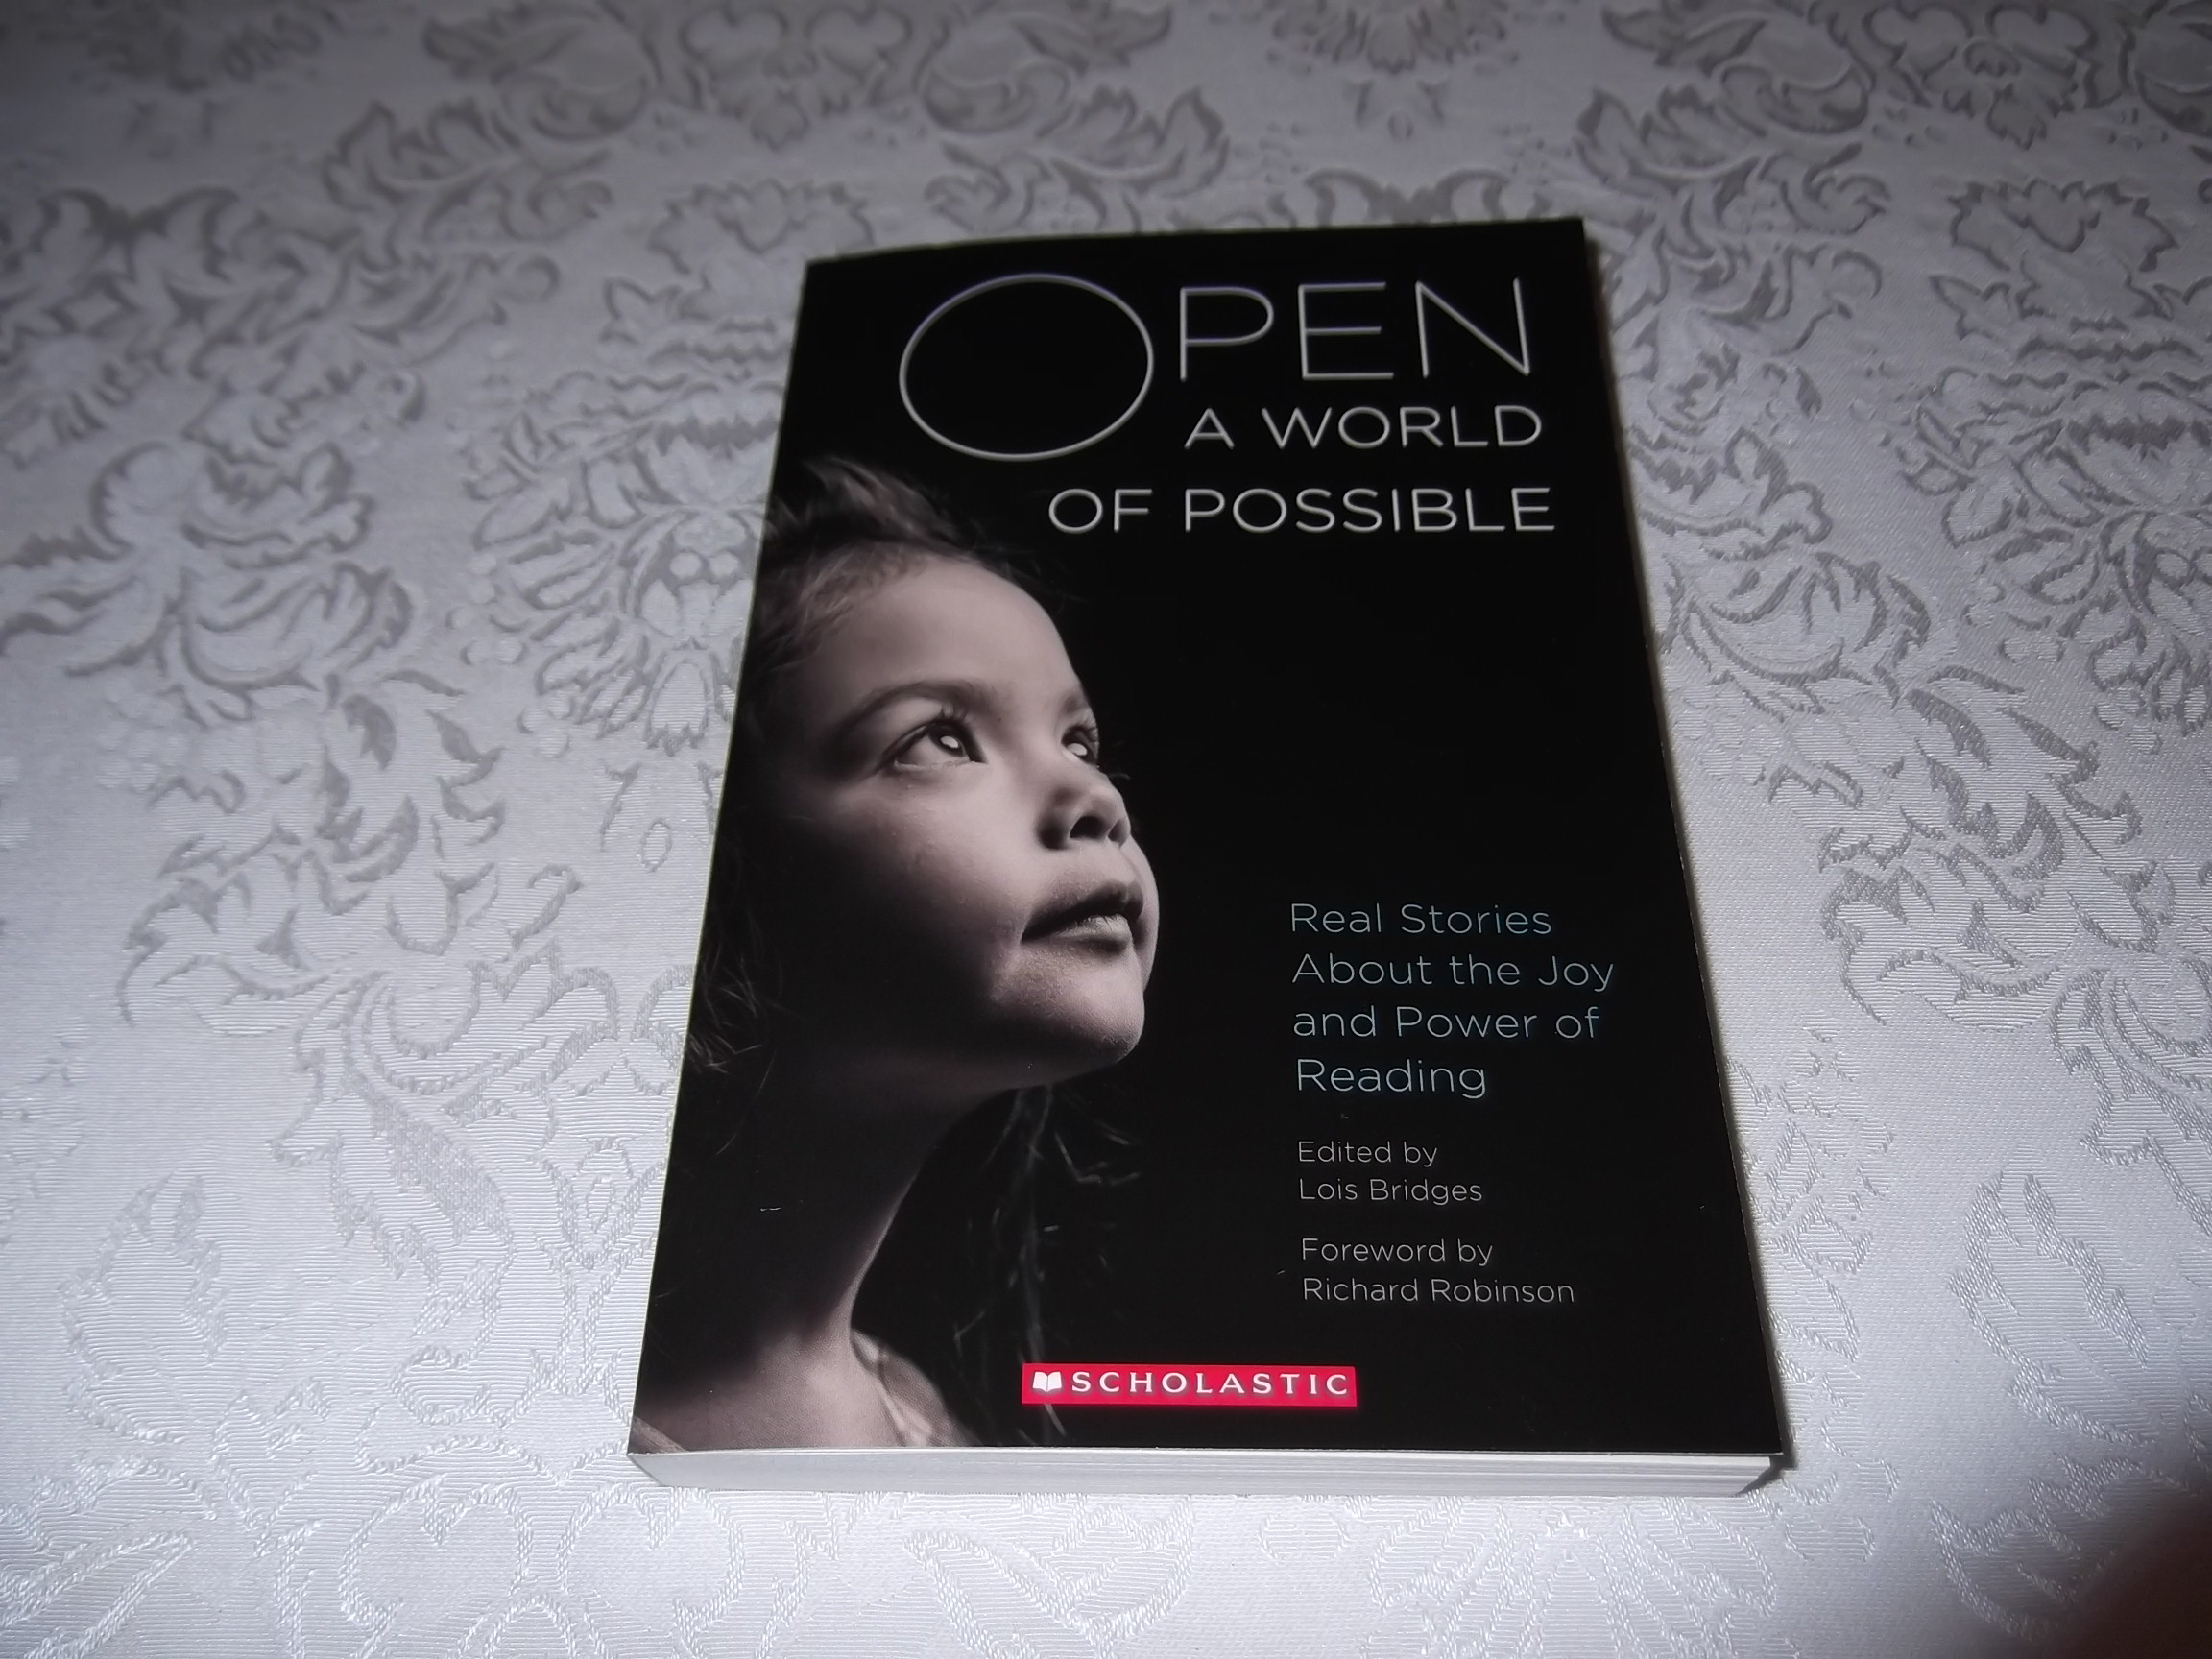 Open A World Of Possible Edited by Lois Bridges Brand New SC